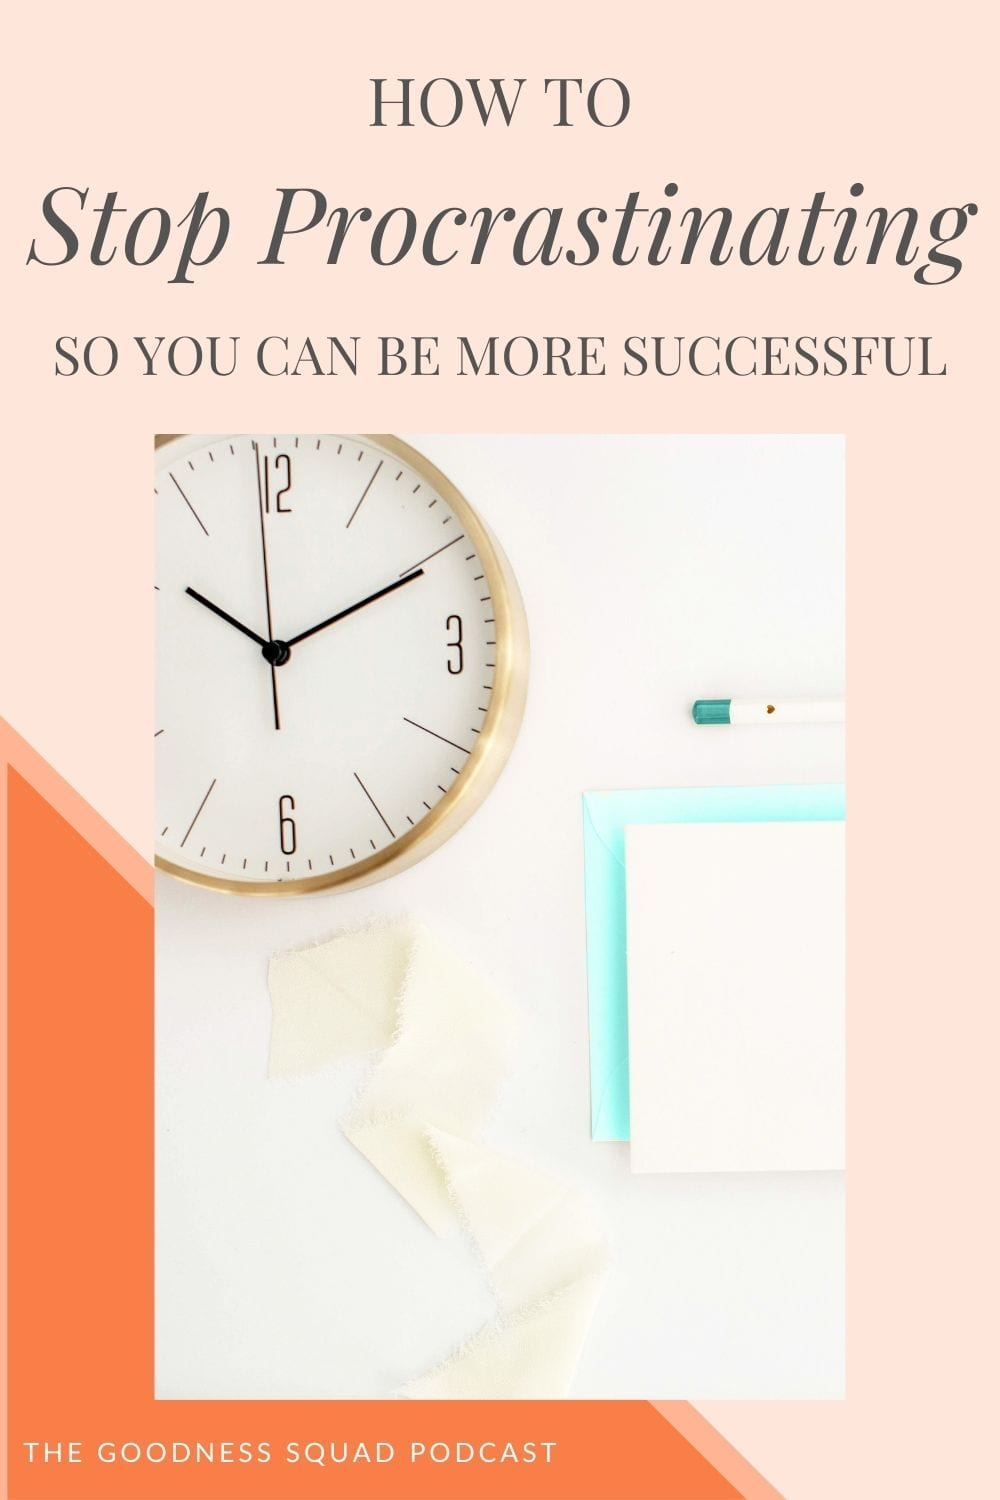 063_how to stop procrastinating so you can start seeing success